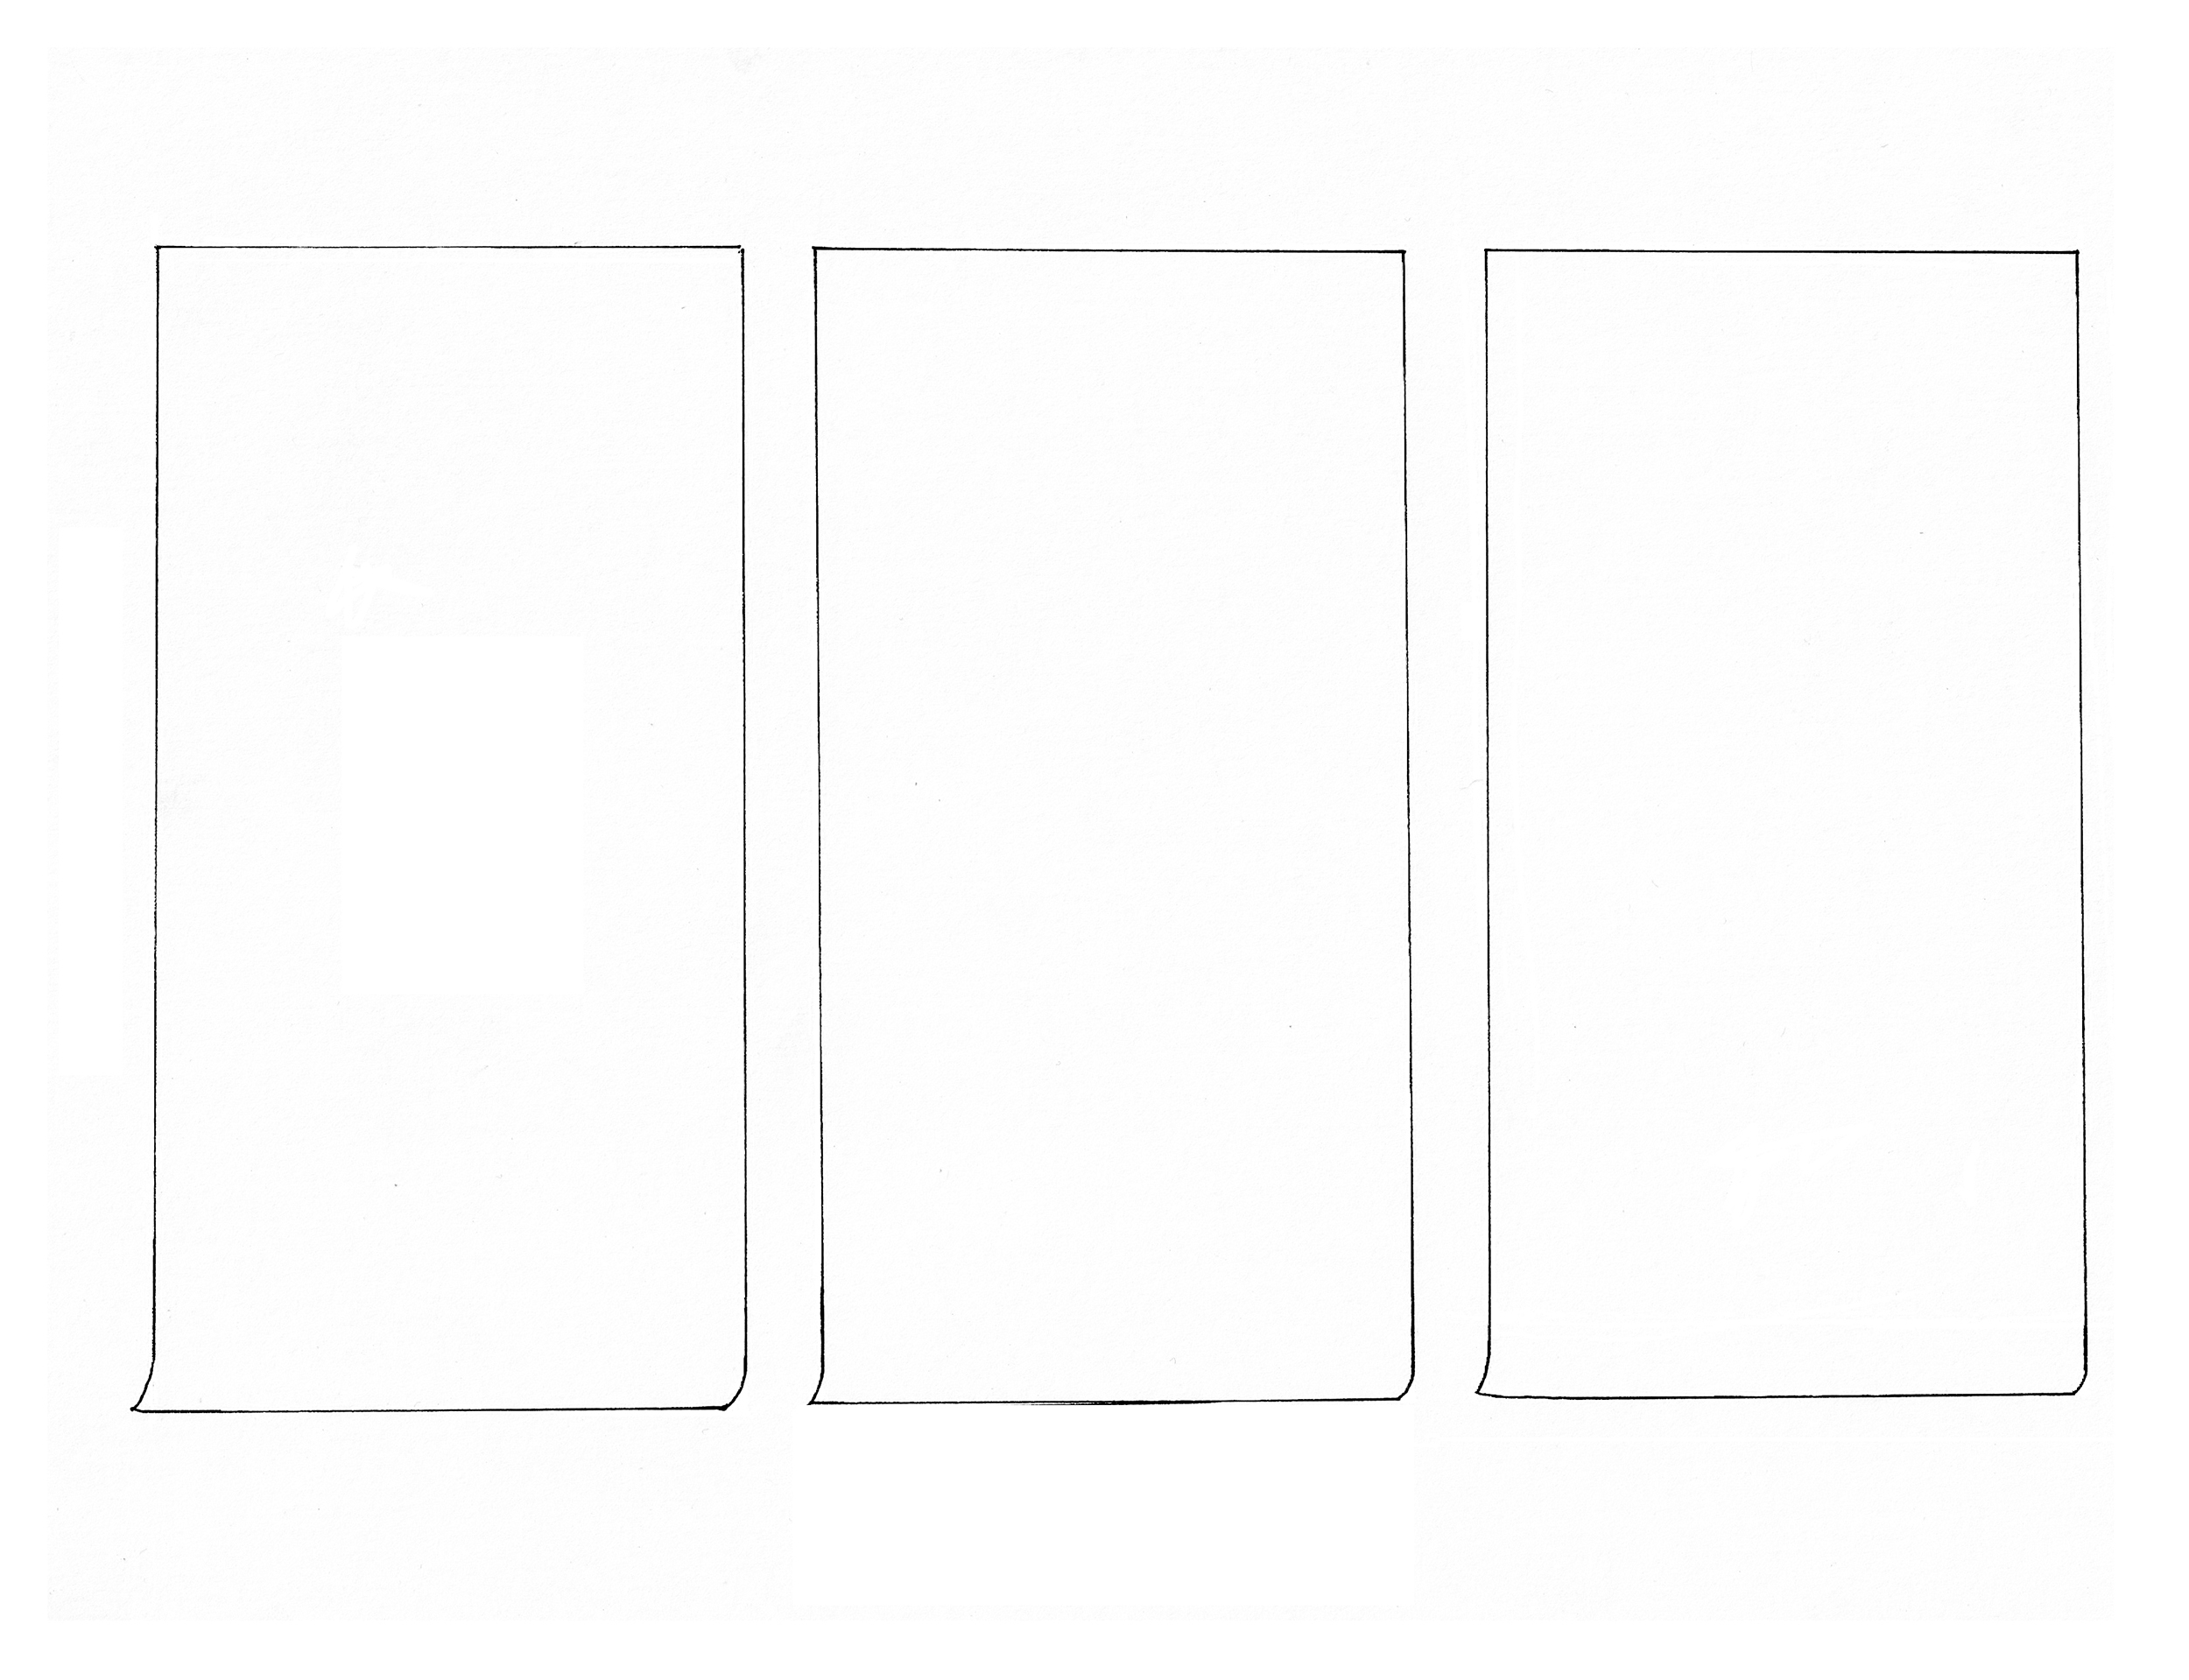 Coloring page inspired by Liu Jianhua, Blank Paper, 2009–2012. Drawn by Erik L. Peterson for the Smart Museum of Art at the University of Chicago.